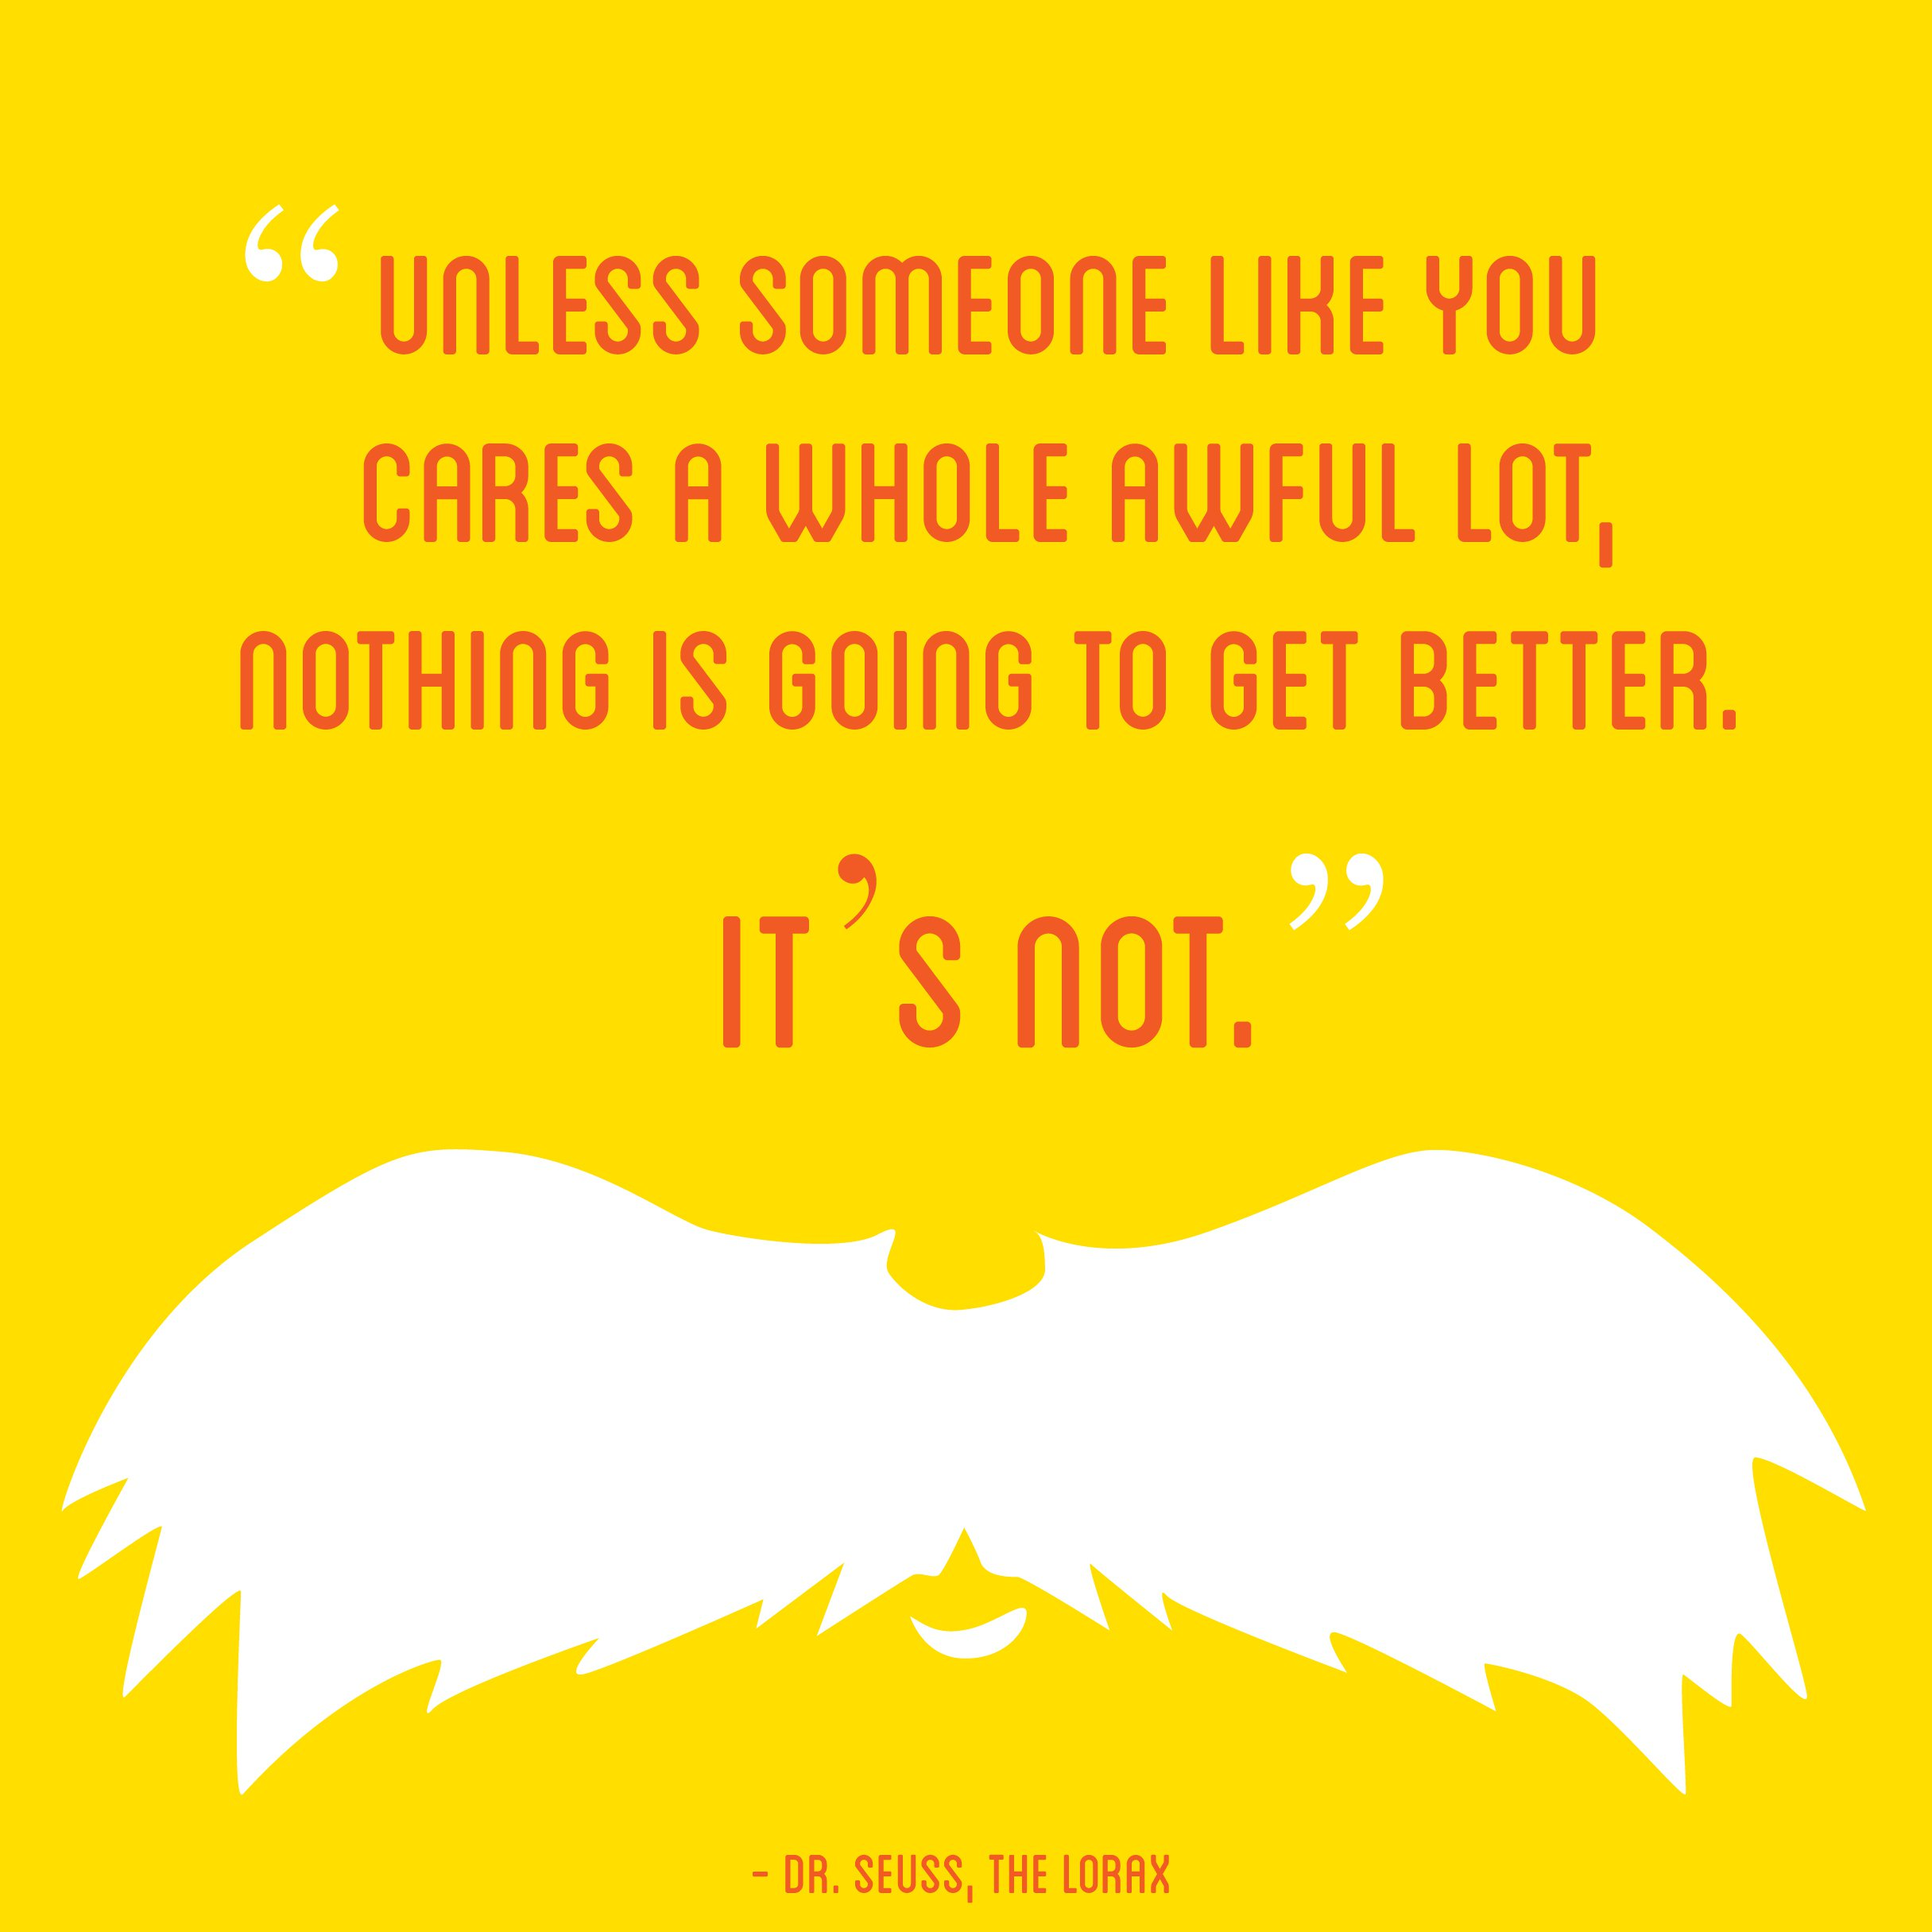 Dr Seuss Quotes About Friendship: Lorax Dr Seuss Quotes. QuotesGram